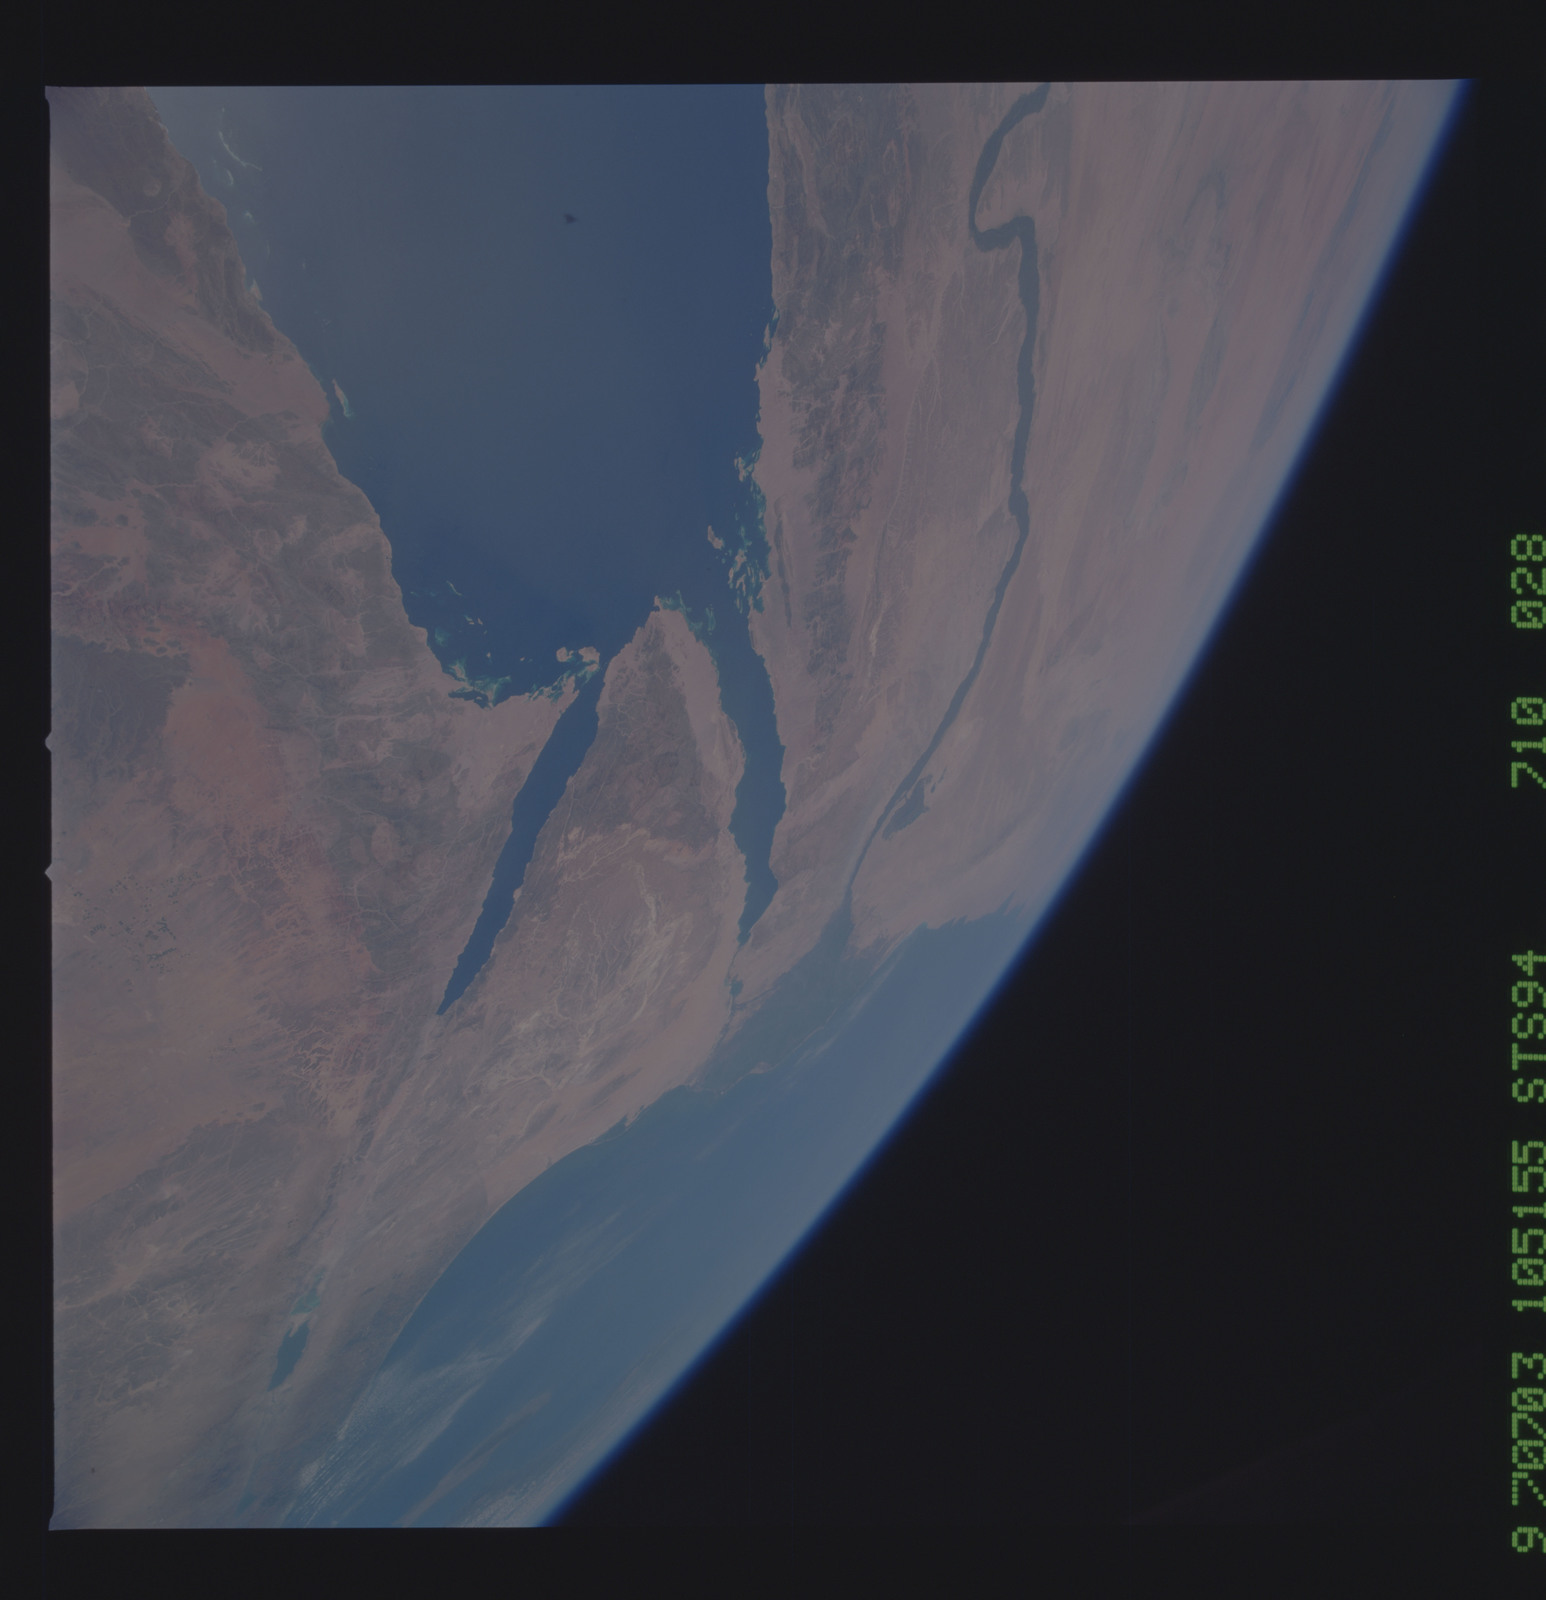 STS094-710-028 - STS-094 - Earth observations taken during STS-94 mission